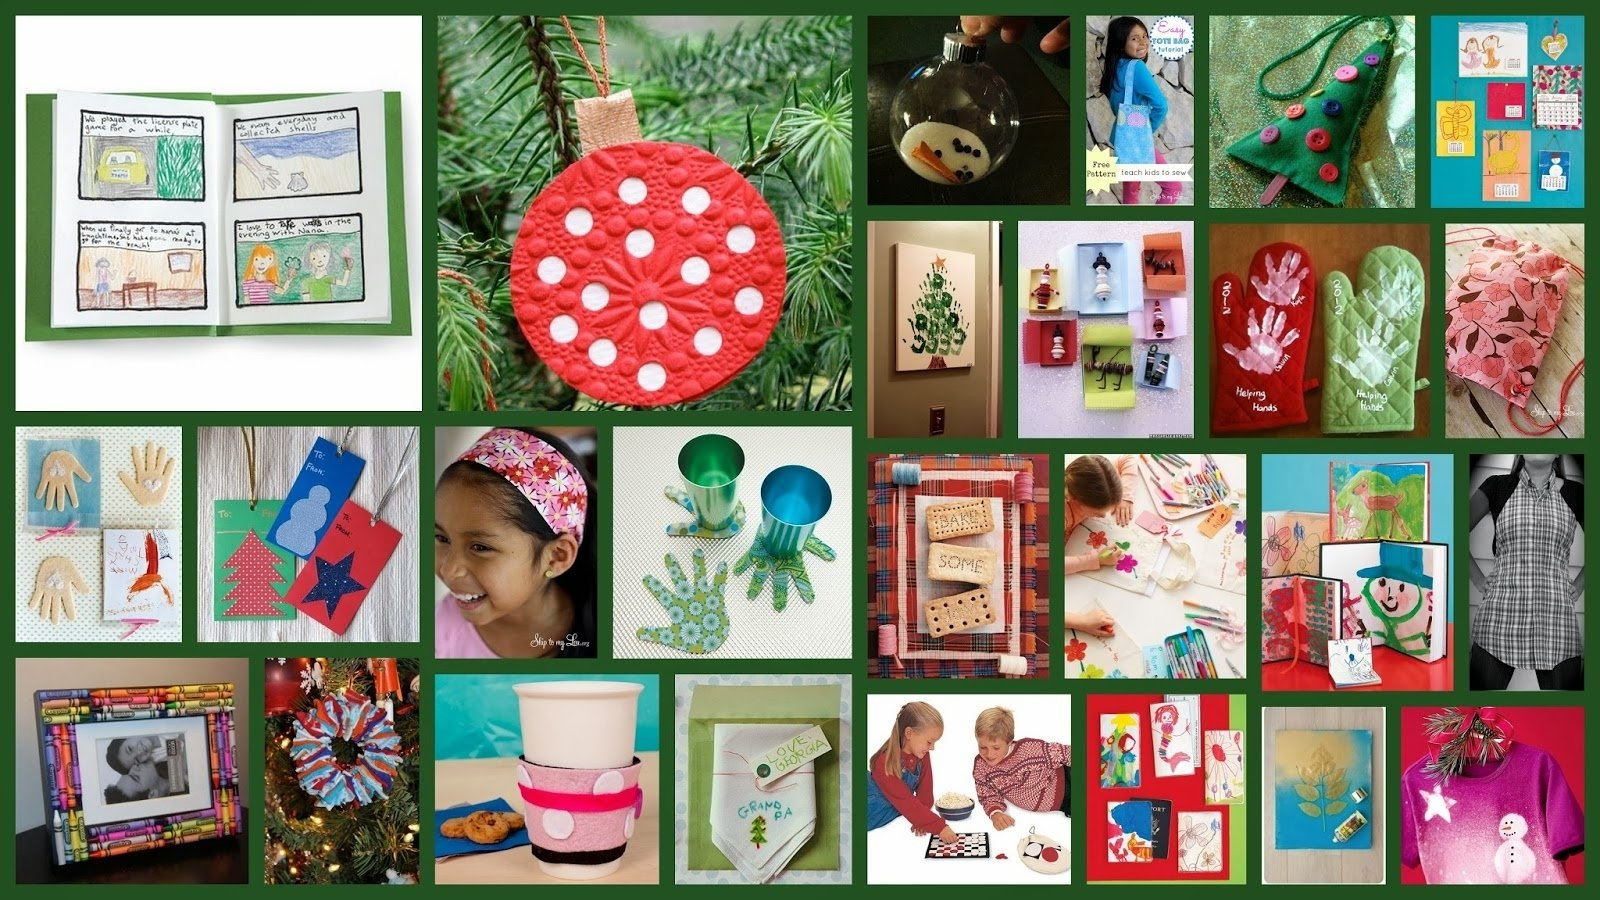 10 Amazing Homemade Christmas Gift Ideas For Kids